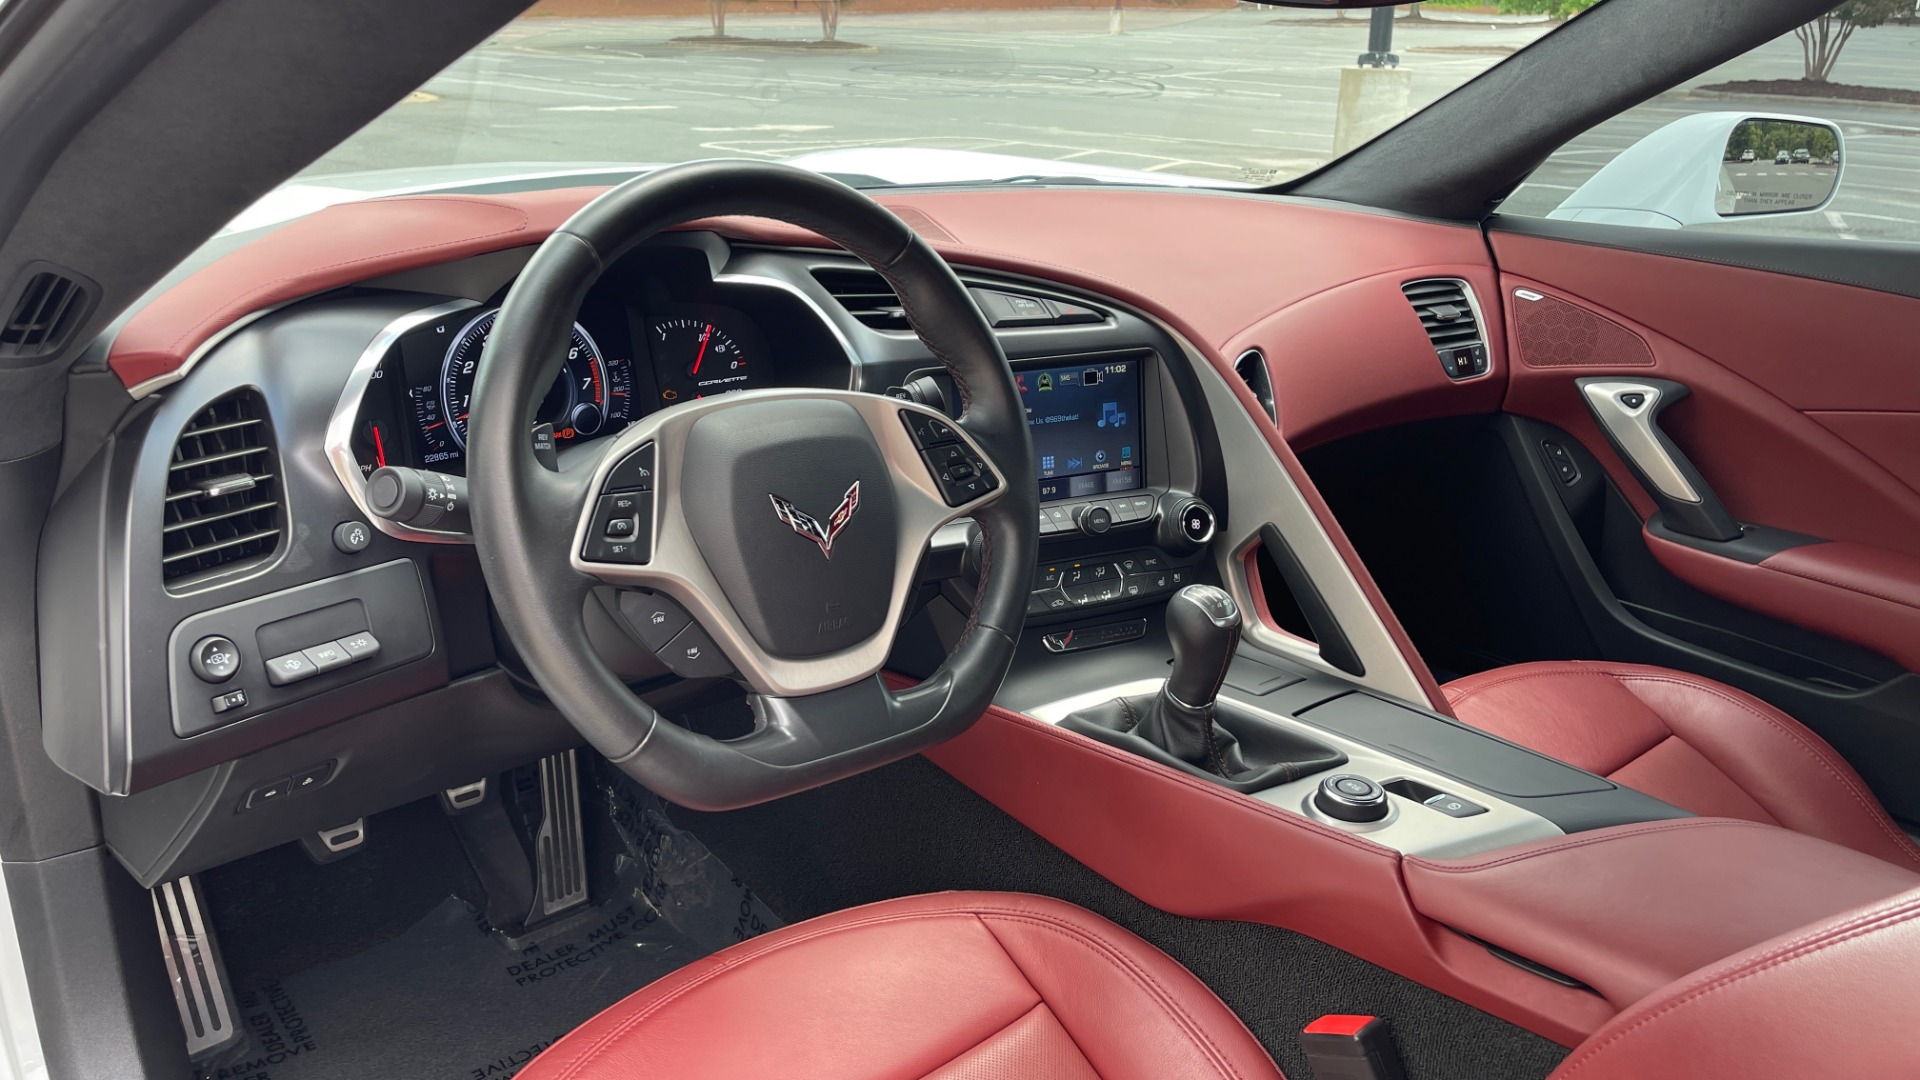 Used 2016 Chevrolet CORVETTE C7 STINGRAY COUPE Z51 3LT / NAV / PERF TRACTION MGMT / REARVIEW for sale Sold at Formula Imports in Charlotte NC 28227 39